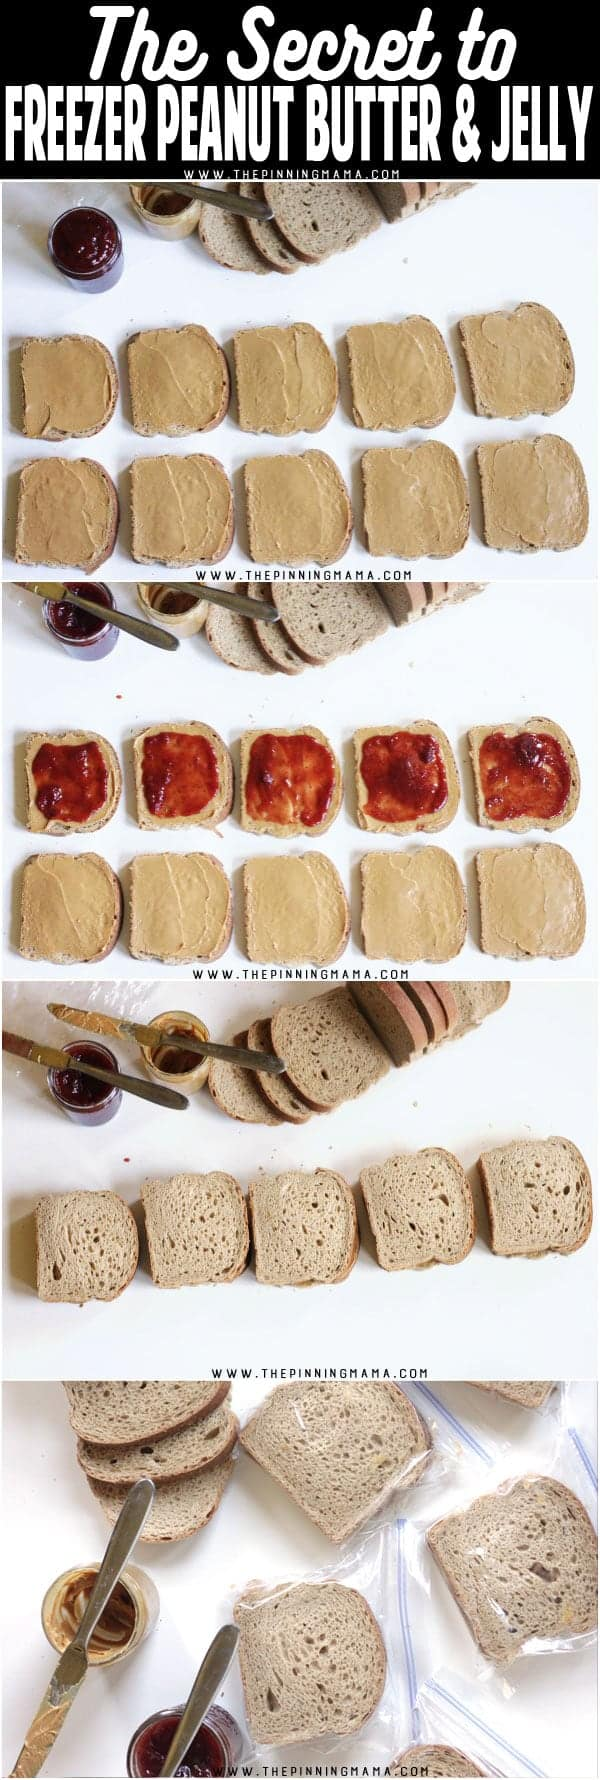 How to make freezer peanut butter and jelly sandwiches so they aren't soggy!! Great for prepping a weeks worth of lunches at a time to save time and stress in the mornings! I can do this for school and work lunches!